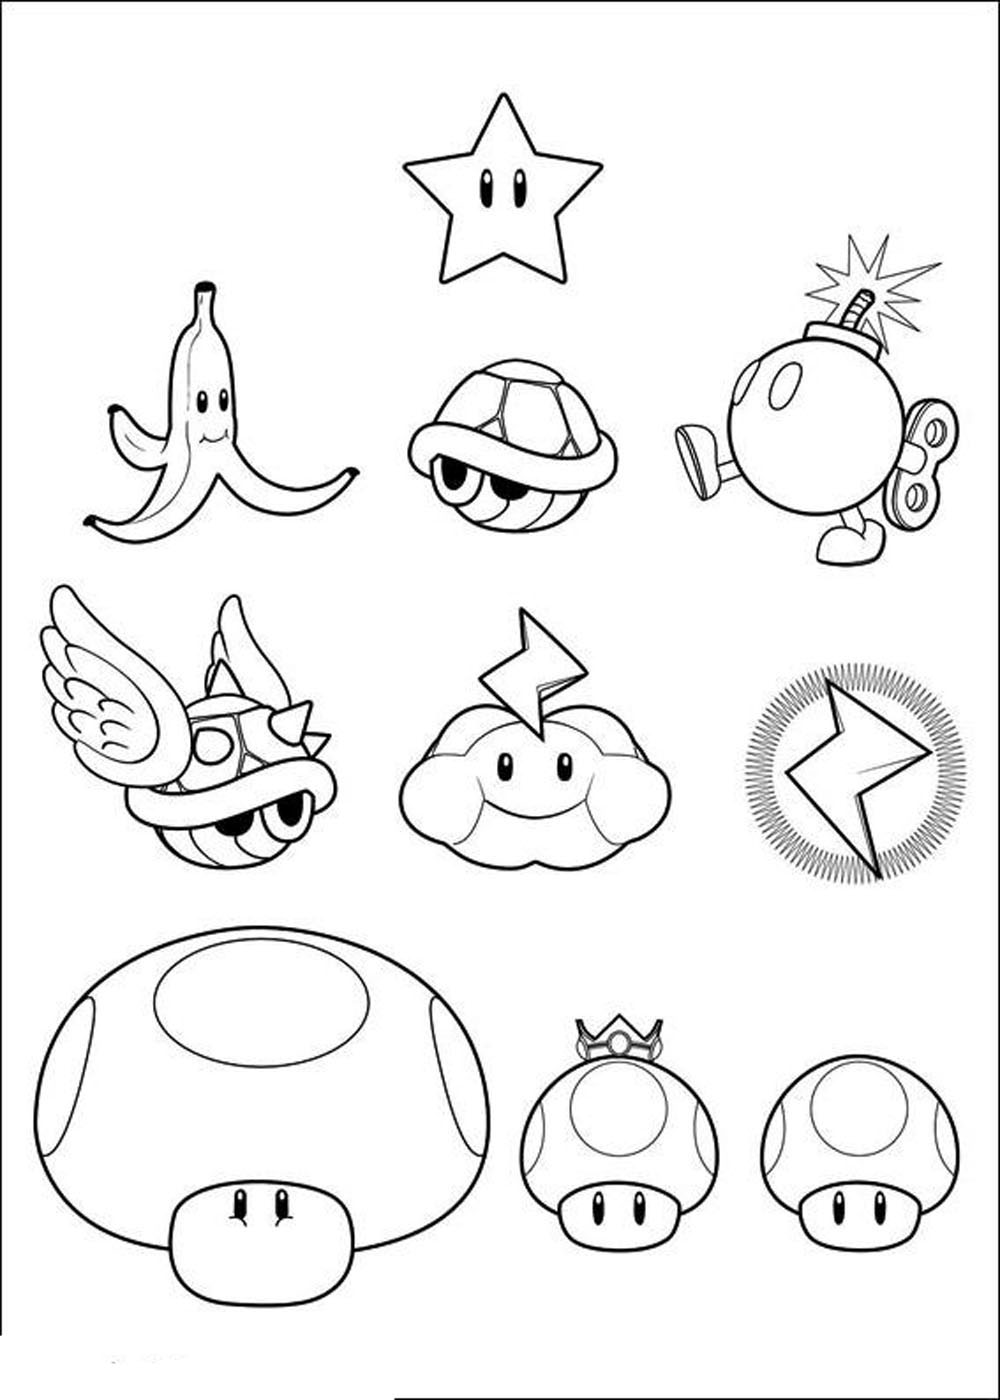 Print & Download - Mario Coloring Pages Themes